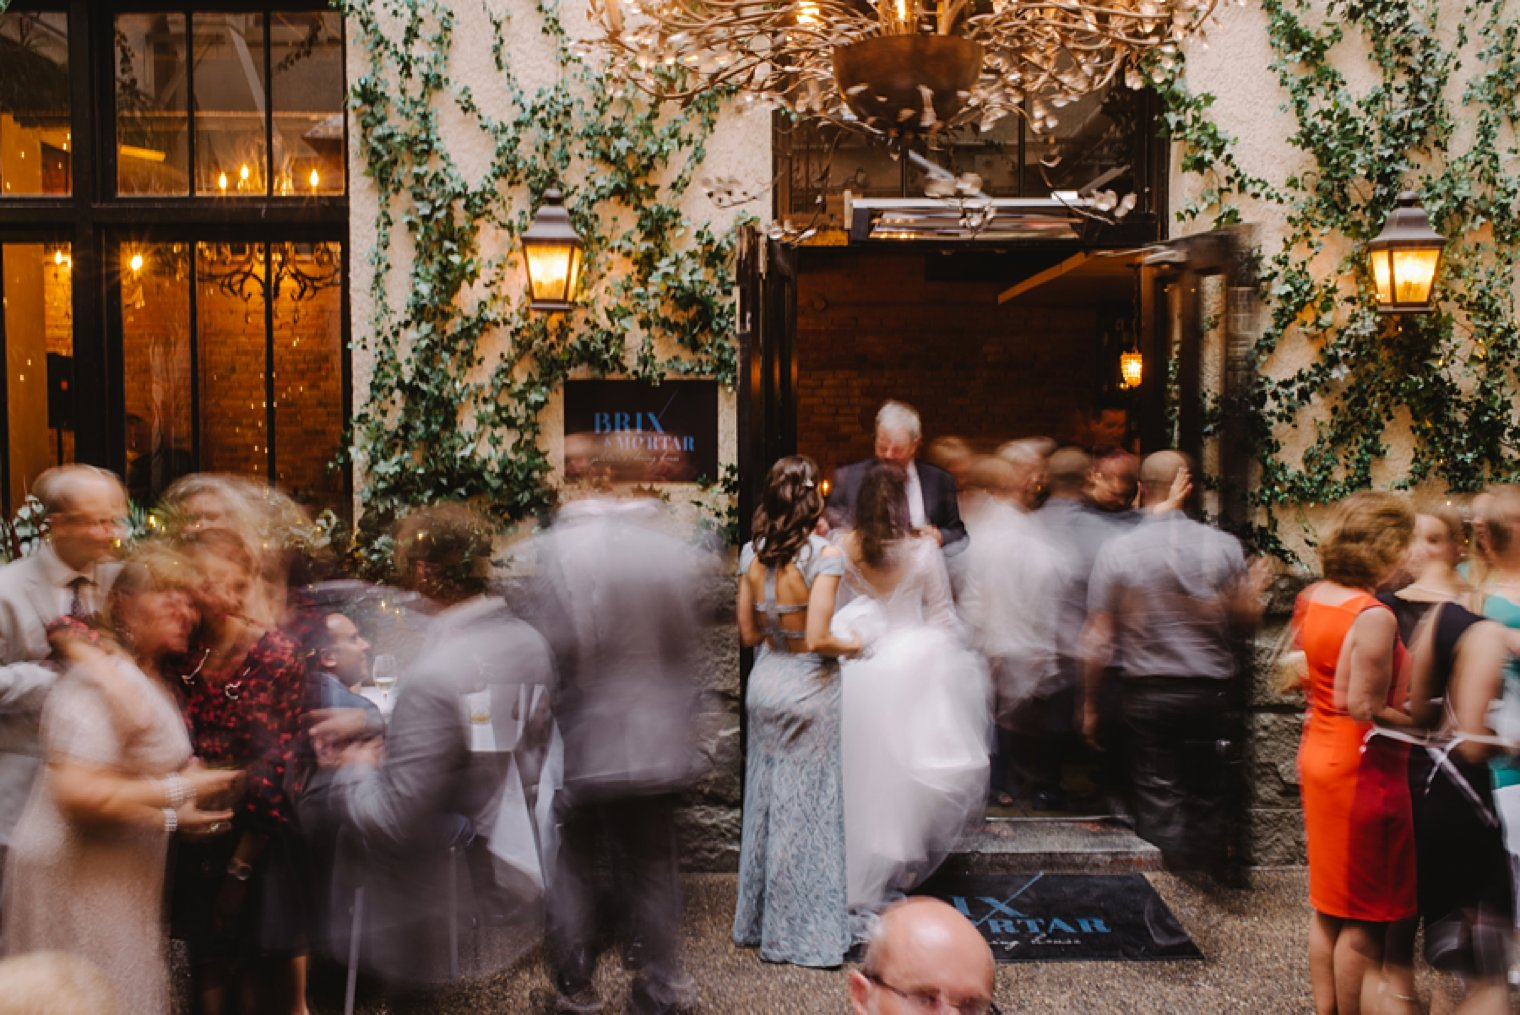 unique brix restaurant wedding